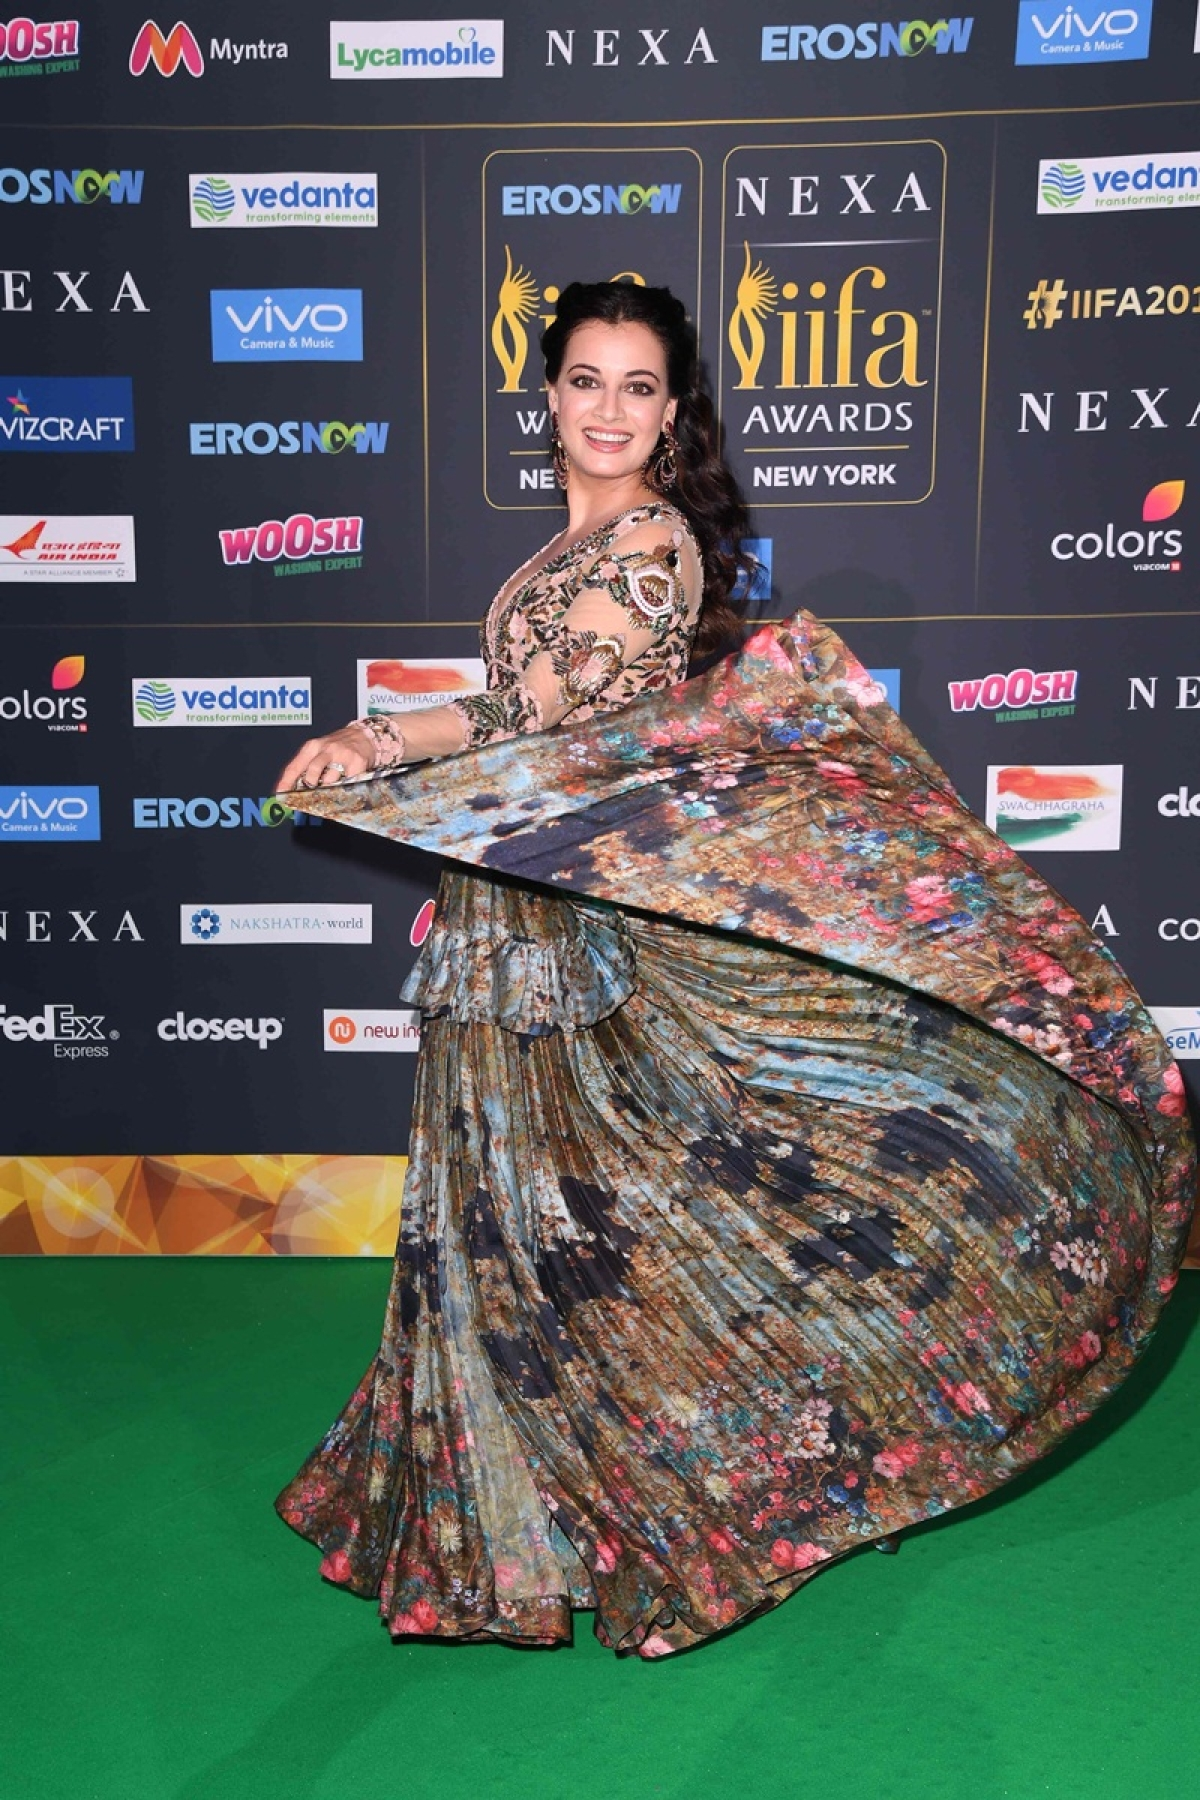 Bollywood actress Dia Mirza arrives for the IIFA Awards July 15, 2017 at the MetLife Stadium in East Rutherford, New Jersey during the 18th International Indian Film Academy (IIFA) Festival. / AFP PHOTO / ANGELA WEISS